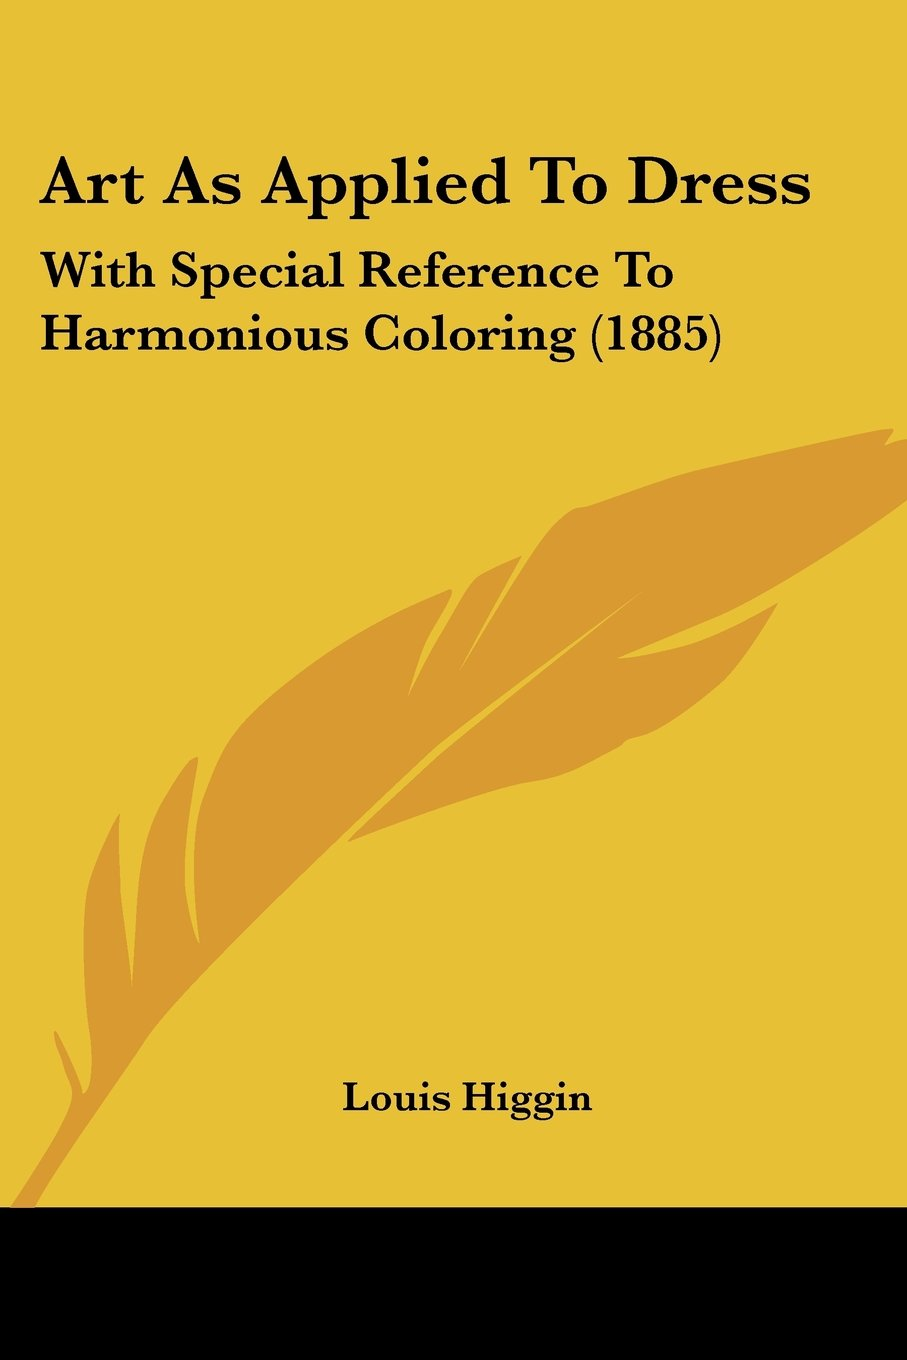 Art As Applied To Dress: With Special Reference To Harmonious Coloring (1885) pdf epub